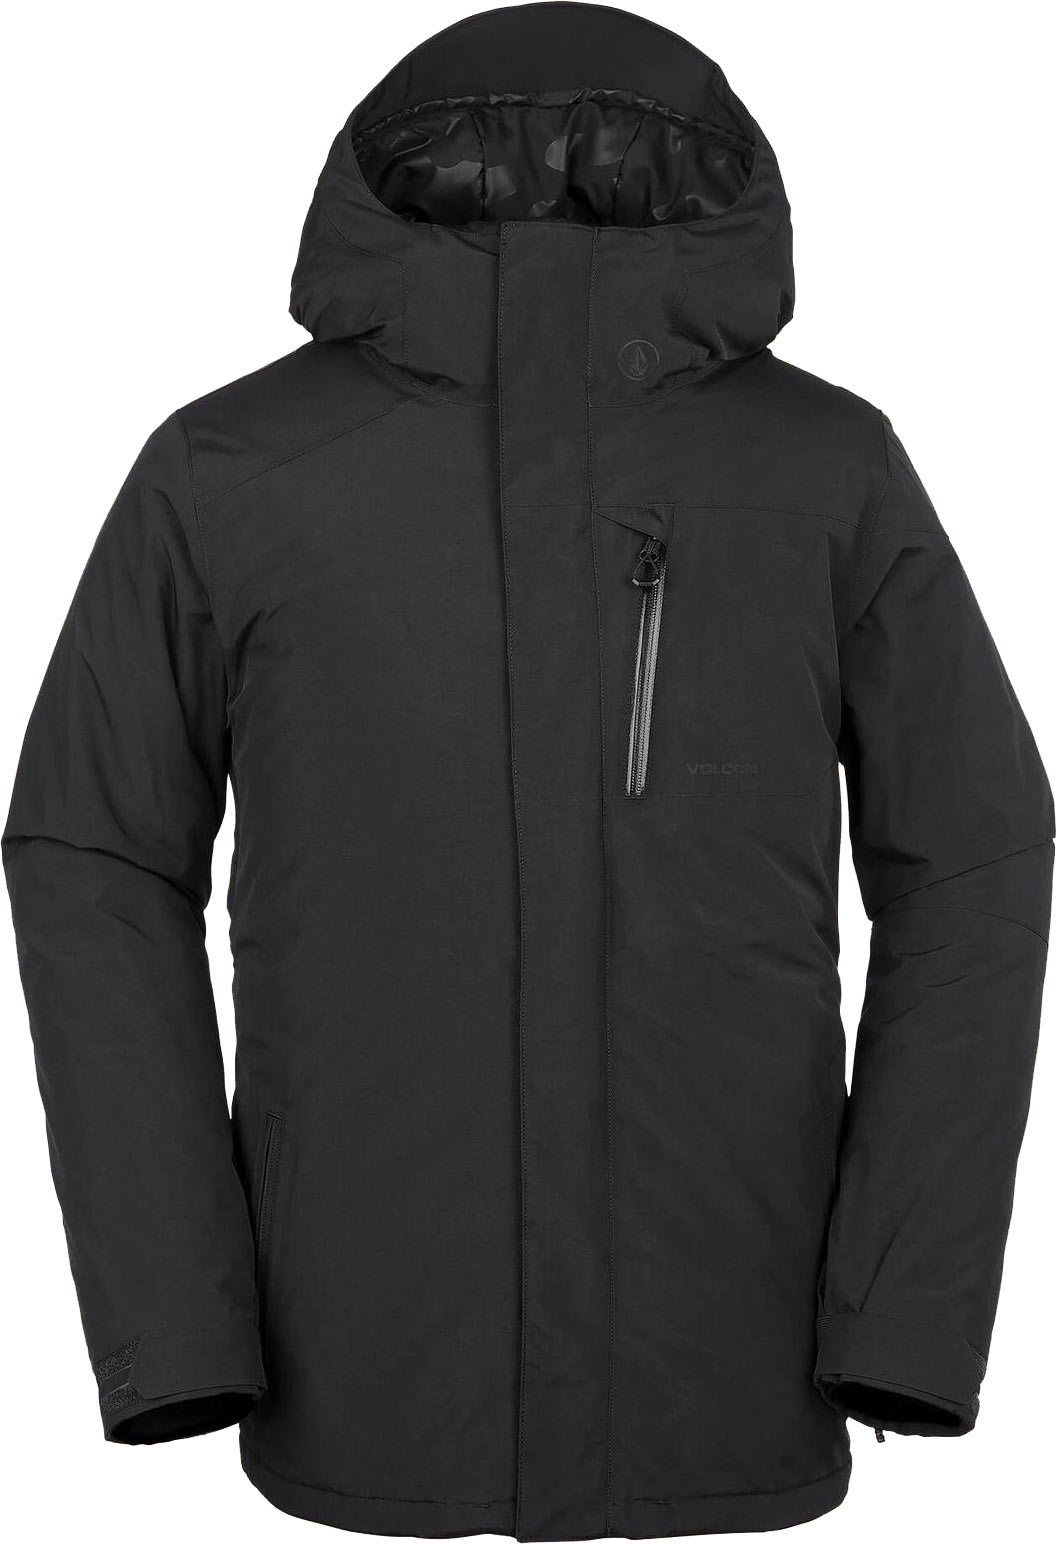 Volcom L Insulated Gore Tex Snowboard Jacket 2019